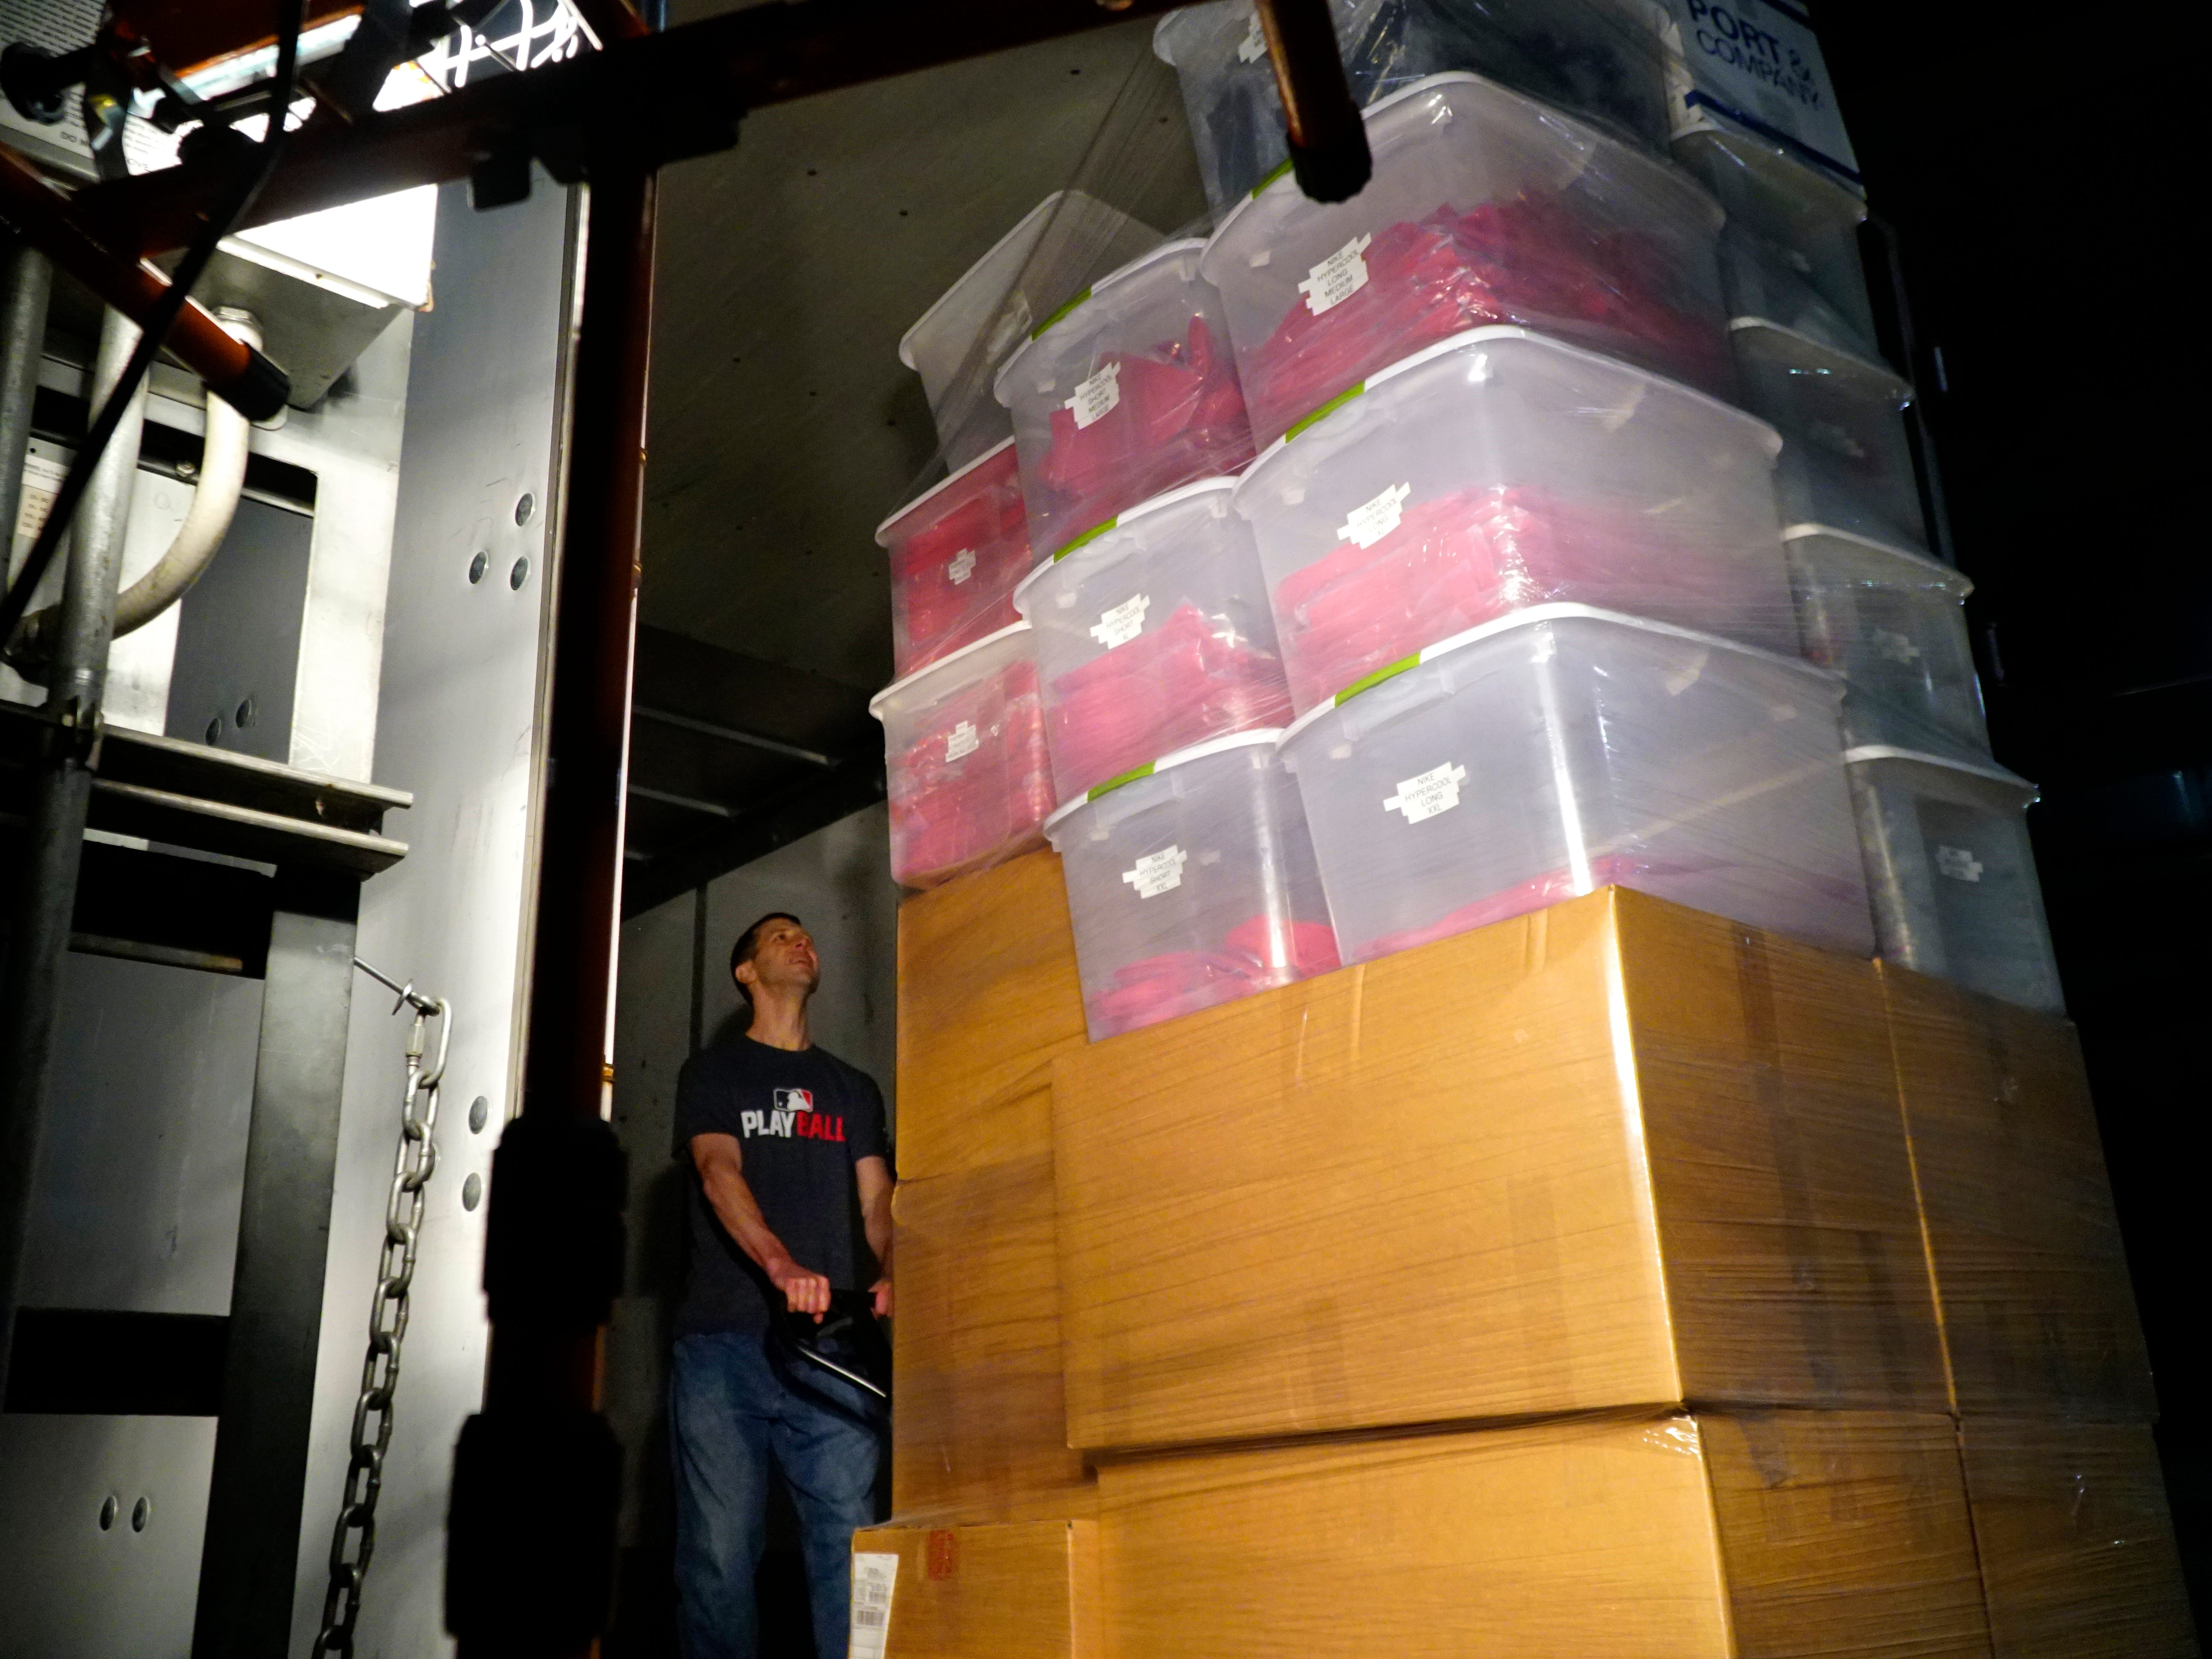 A staffer loads a tower of Cincinnati Reds apparel at at Great American Ball Park, Tuesday, Feb. 5, 2019. The team's tractor-trailer will haul 1,000 baseball bats, 500 hats, and 100 cases of sunflower seeds to the Reds Development Complex in Phoenix, Ariz.